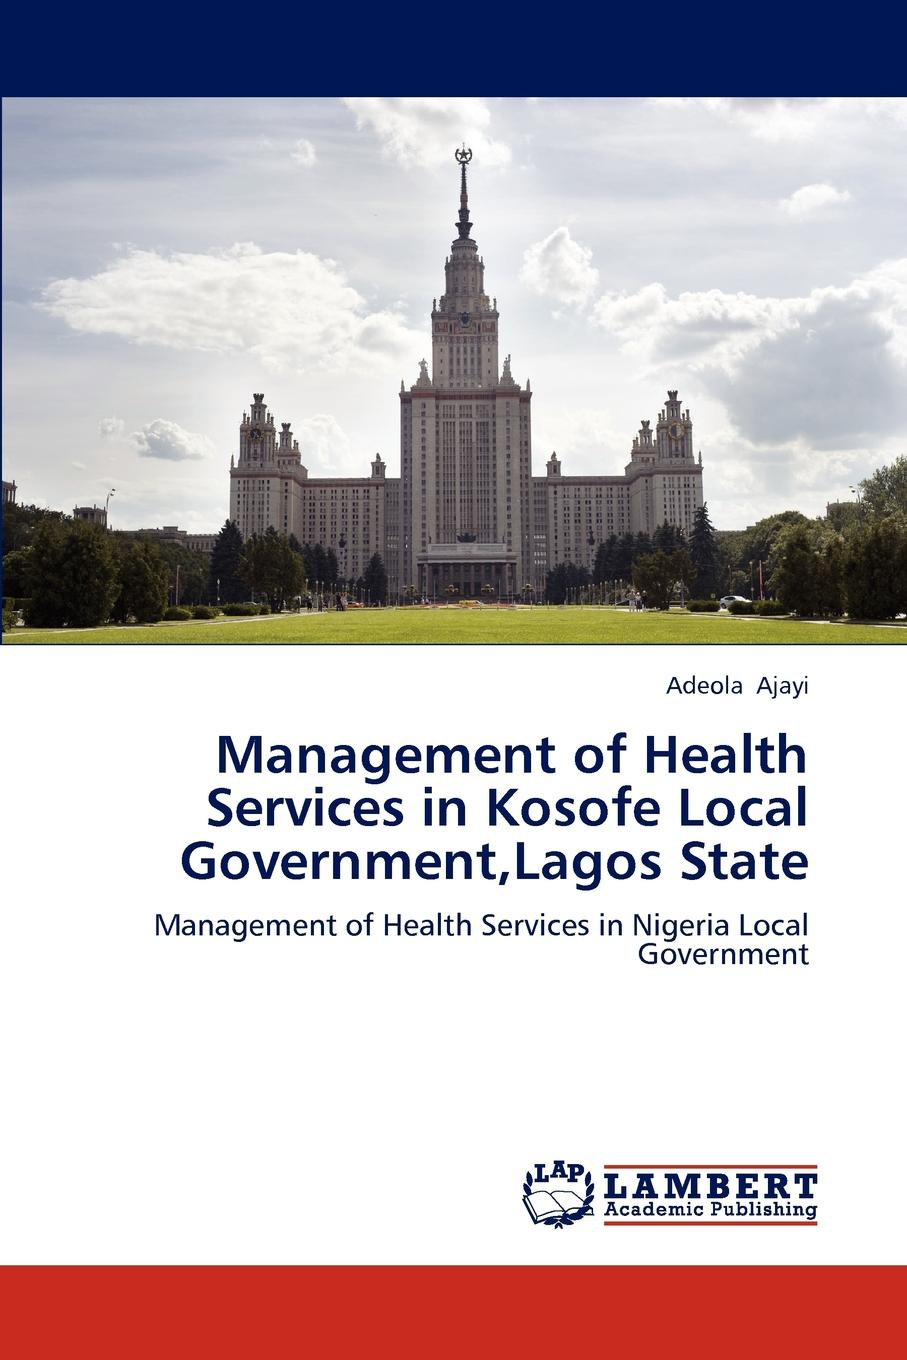 Management of Health Services in Kosofe Local Government,Lagos State The book examined Management of Health Services in Kosofe Local...